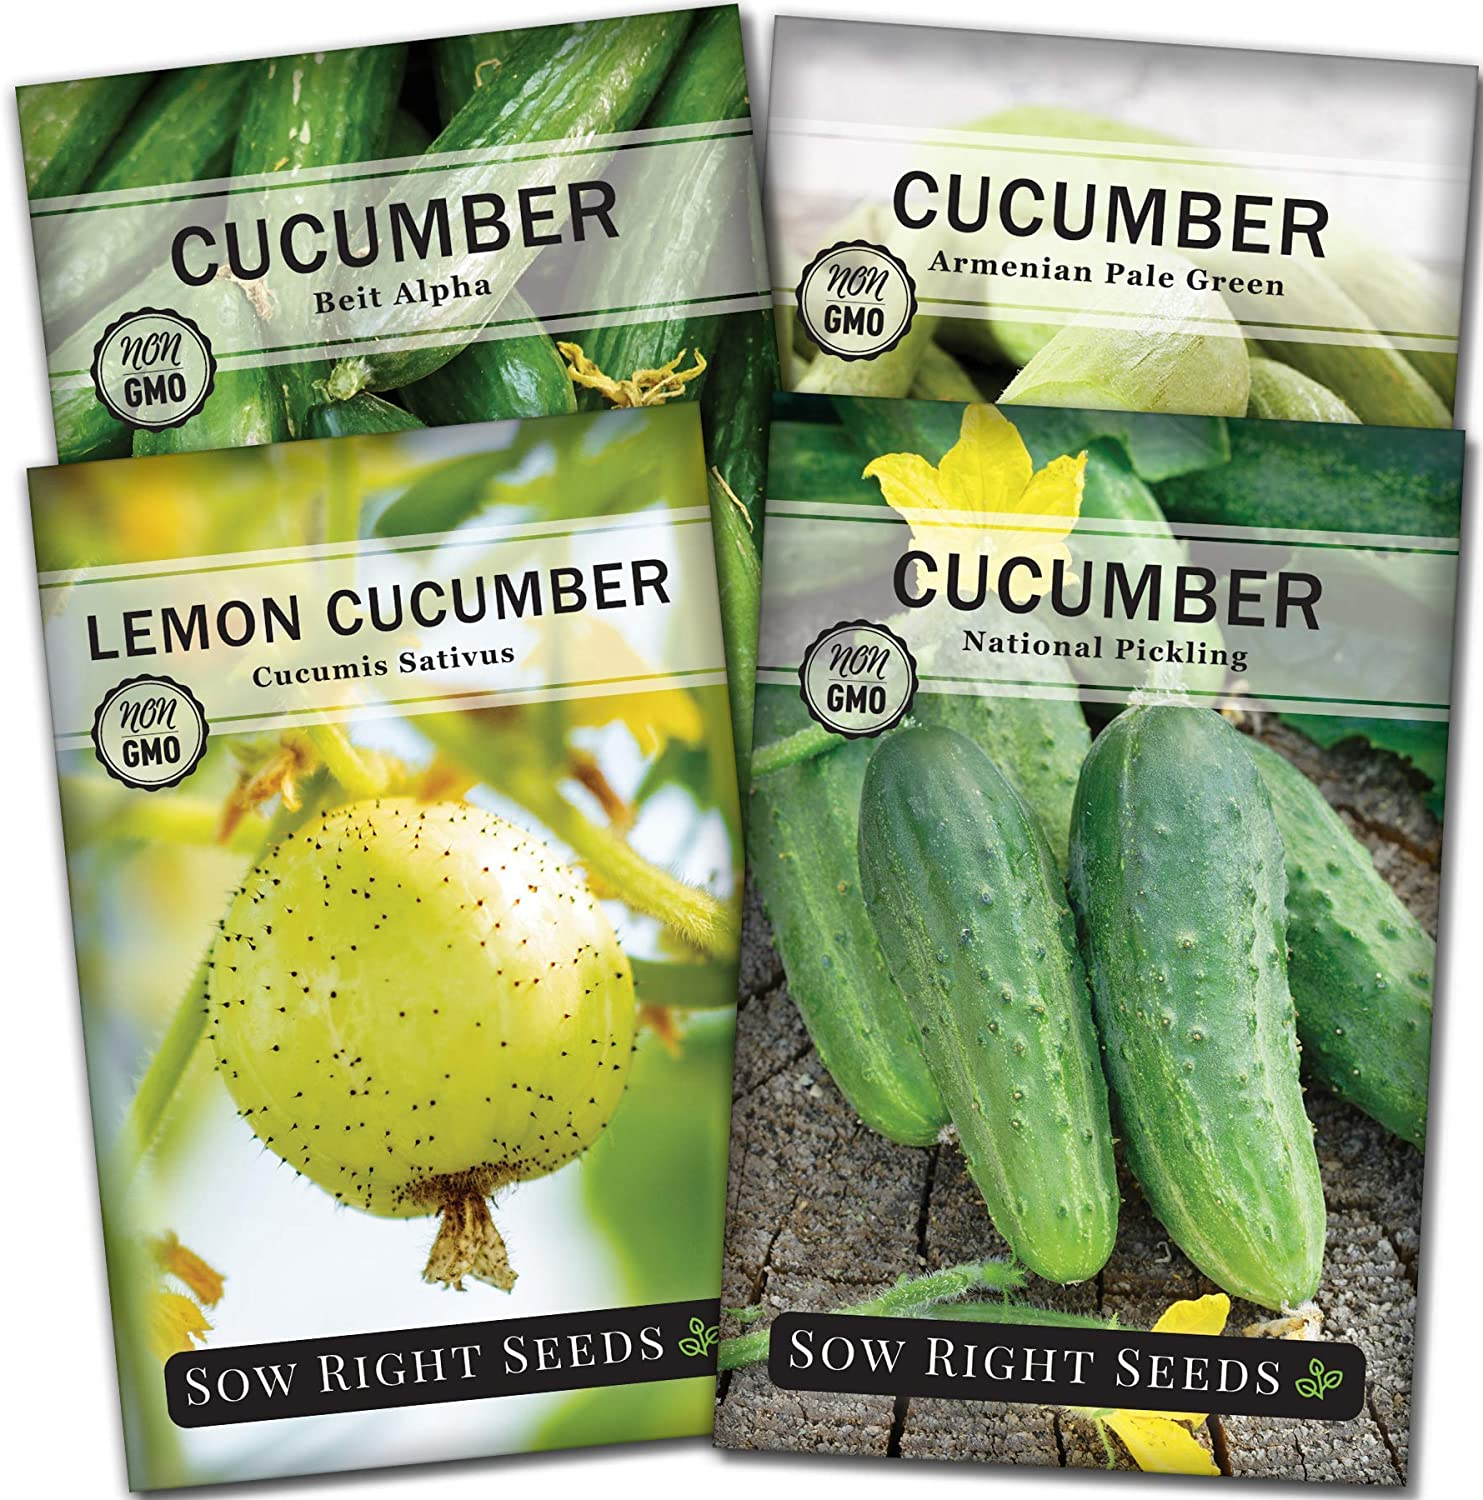 Sow Right Seeds - Cucumber Seed Collection for Planting - Armenian, Pickling, Lemon, Beit Alpha Variety Pack, Non-GMO Heirloom Seeds to Plant and Grow a Home Vegetable Garden, Great Gardening Gift